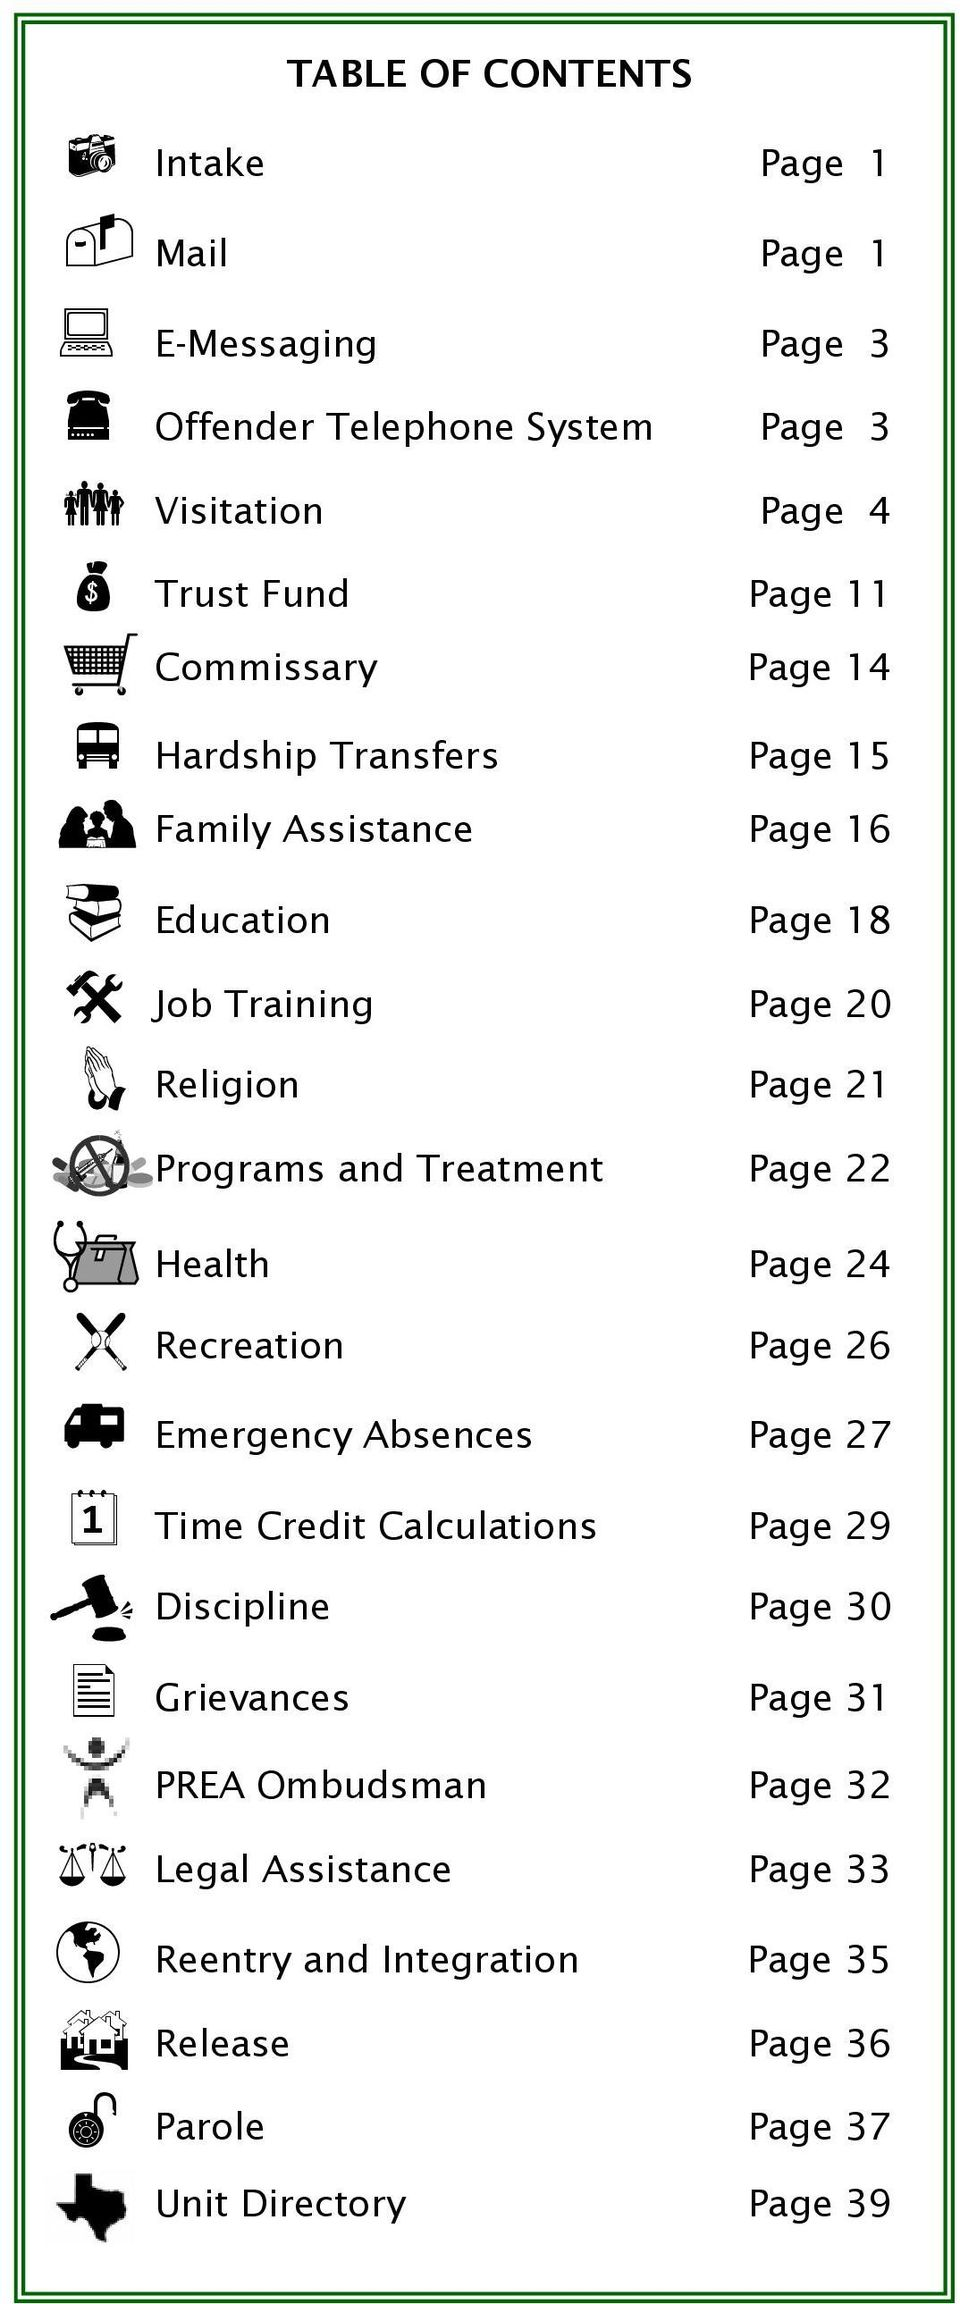 Treatment Page 22 Health Page 24 f g à % ² Recreation Page 26 Emergency Absences Page 27 Time Credit Calculations Page 29 Discipline Page 30